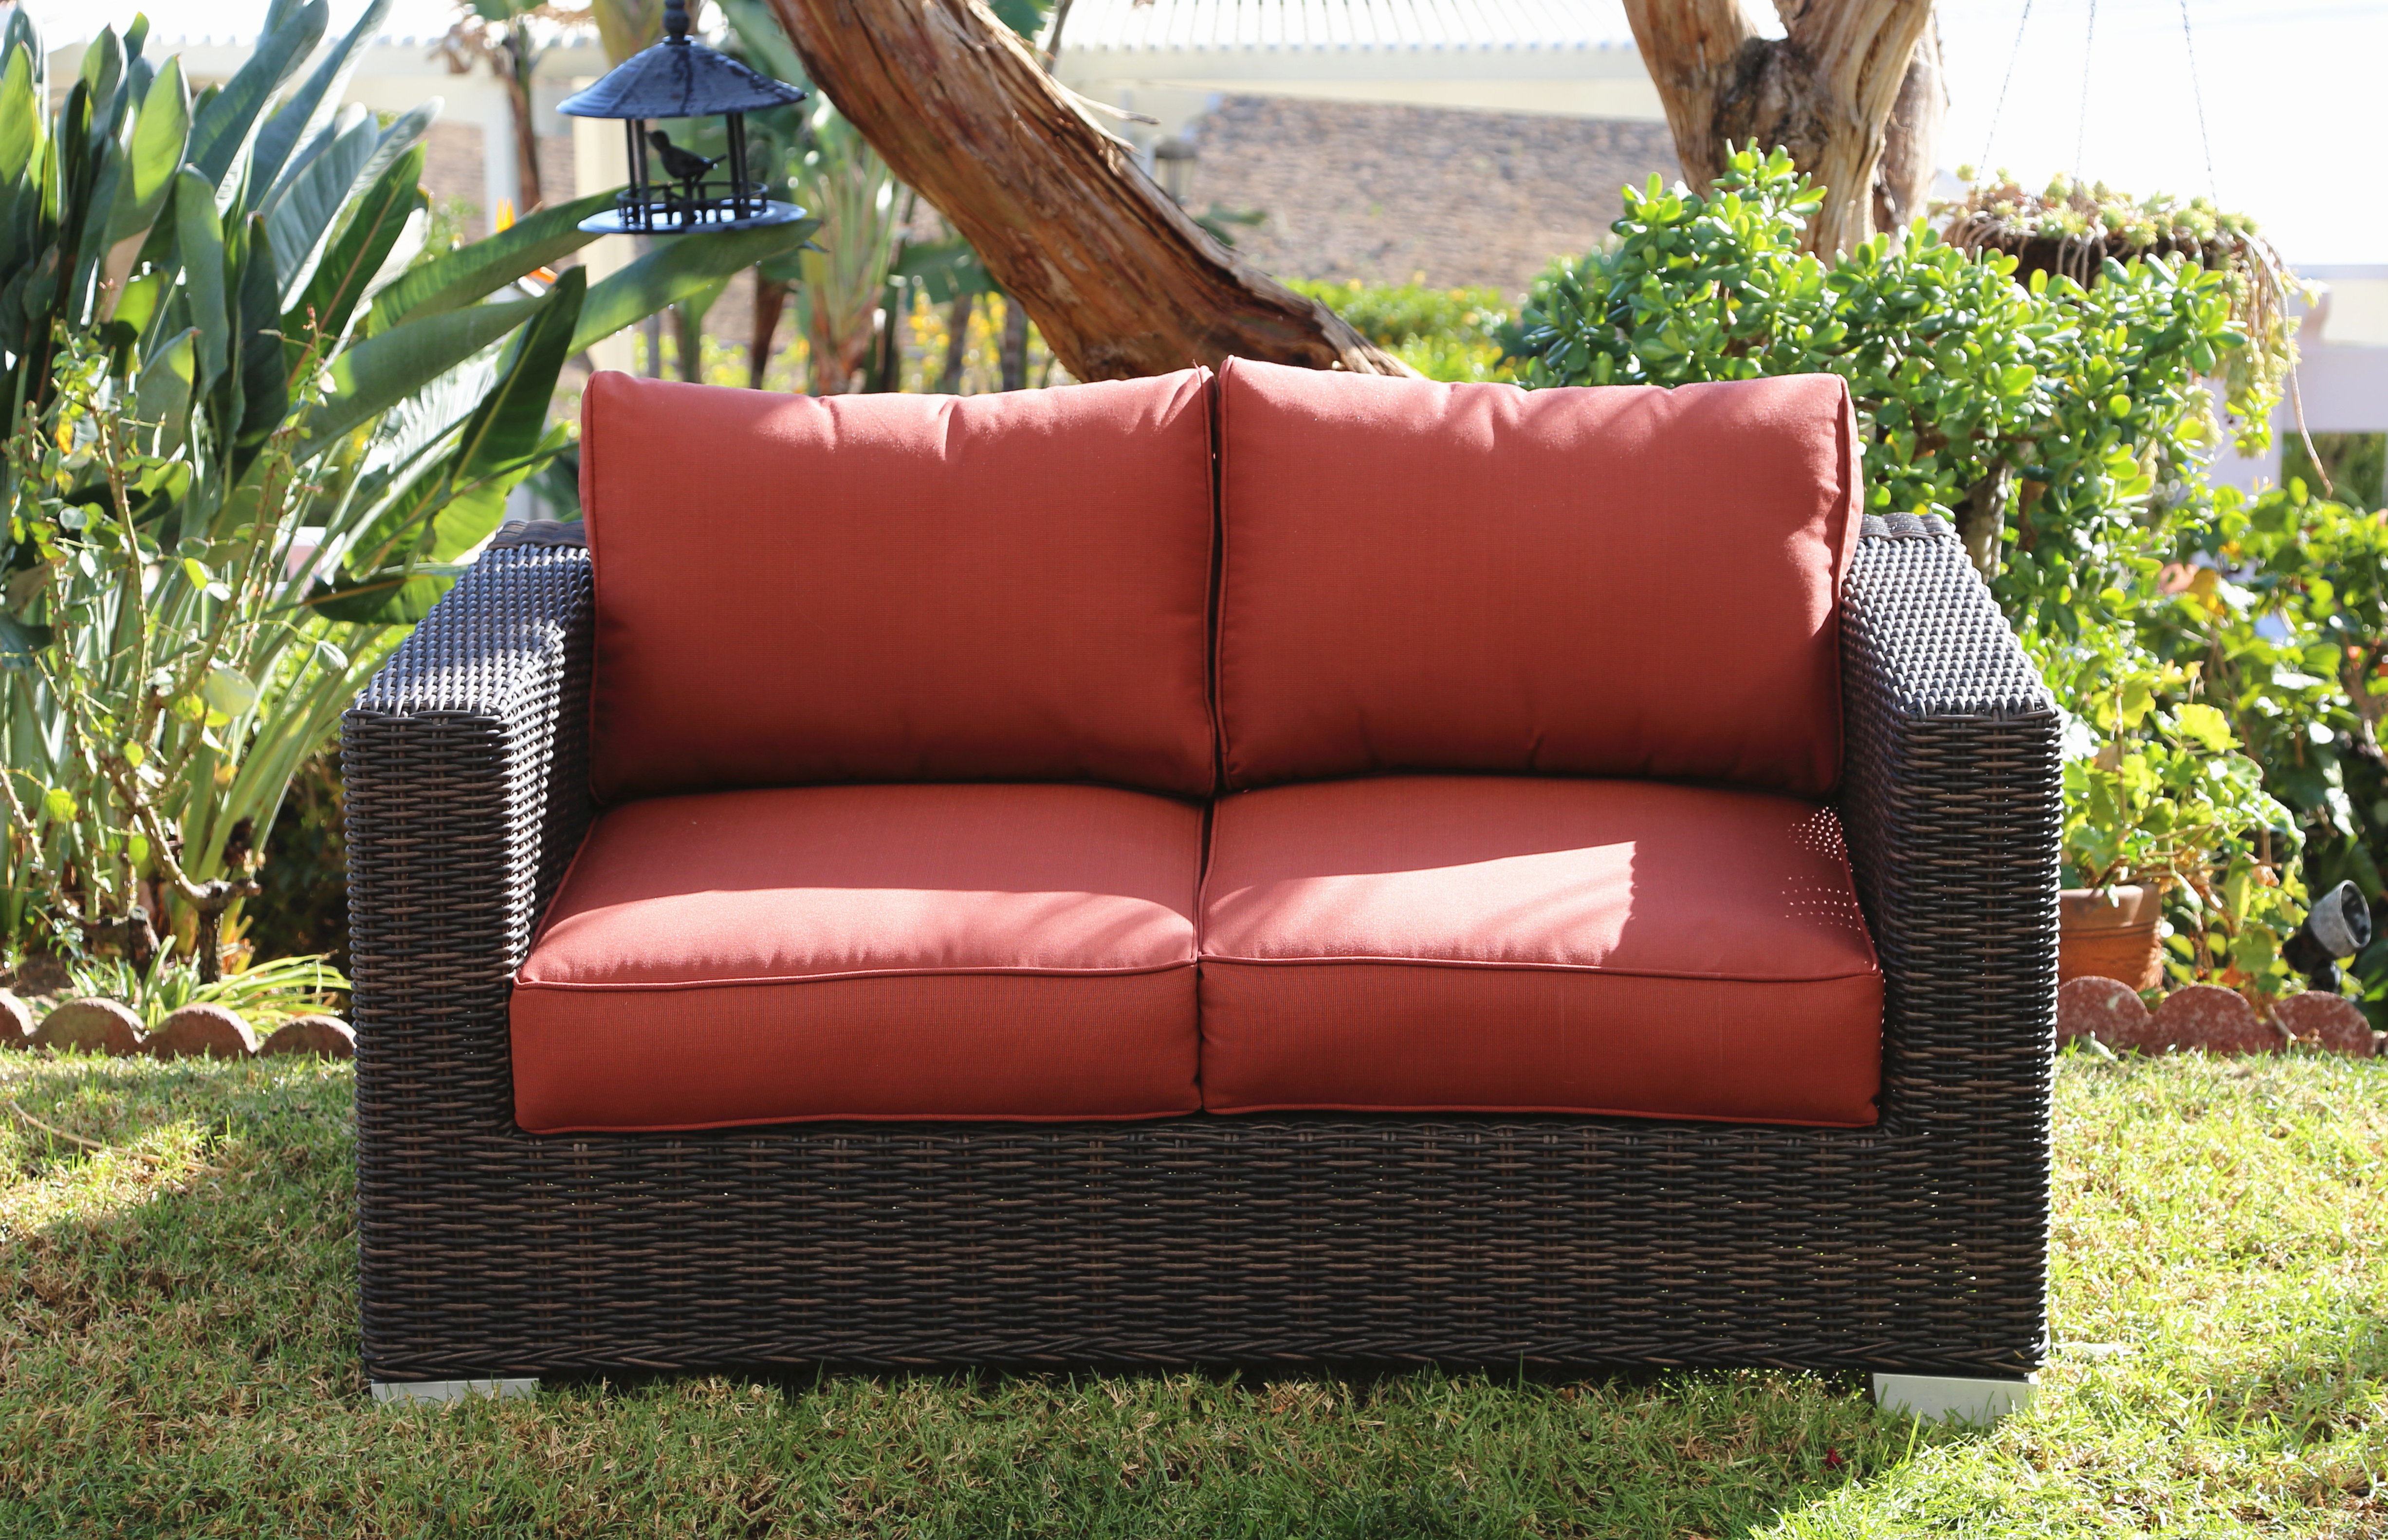 Preferred Mendelson Loveseats With Cushion Throughout Fults Loveseat With Cushion (View 5 of 20)